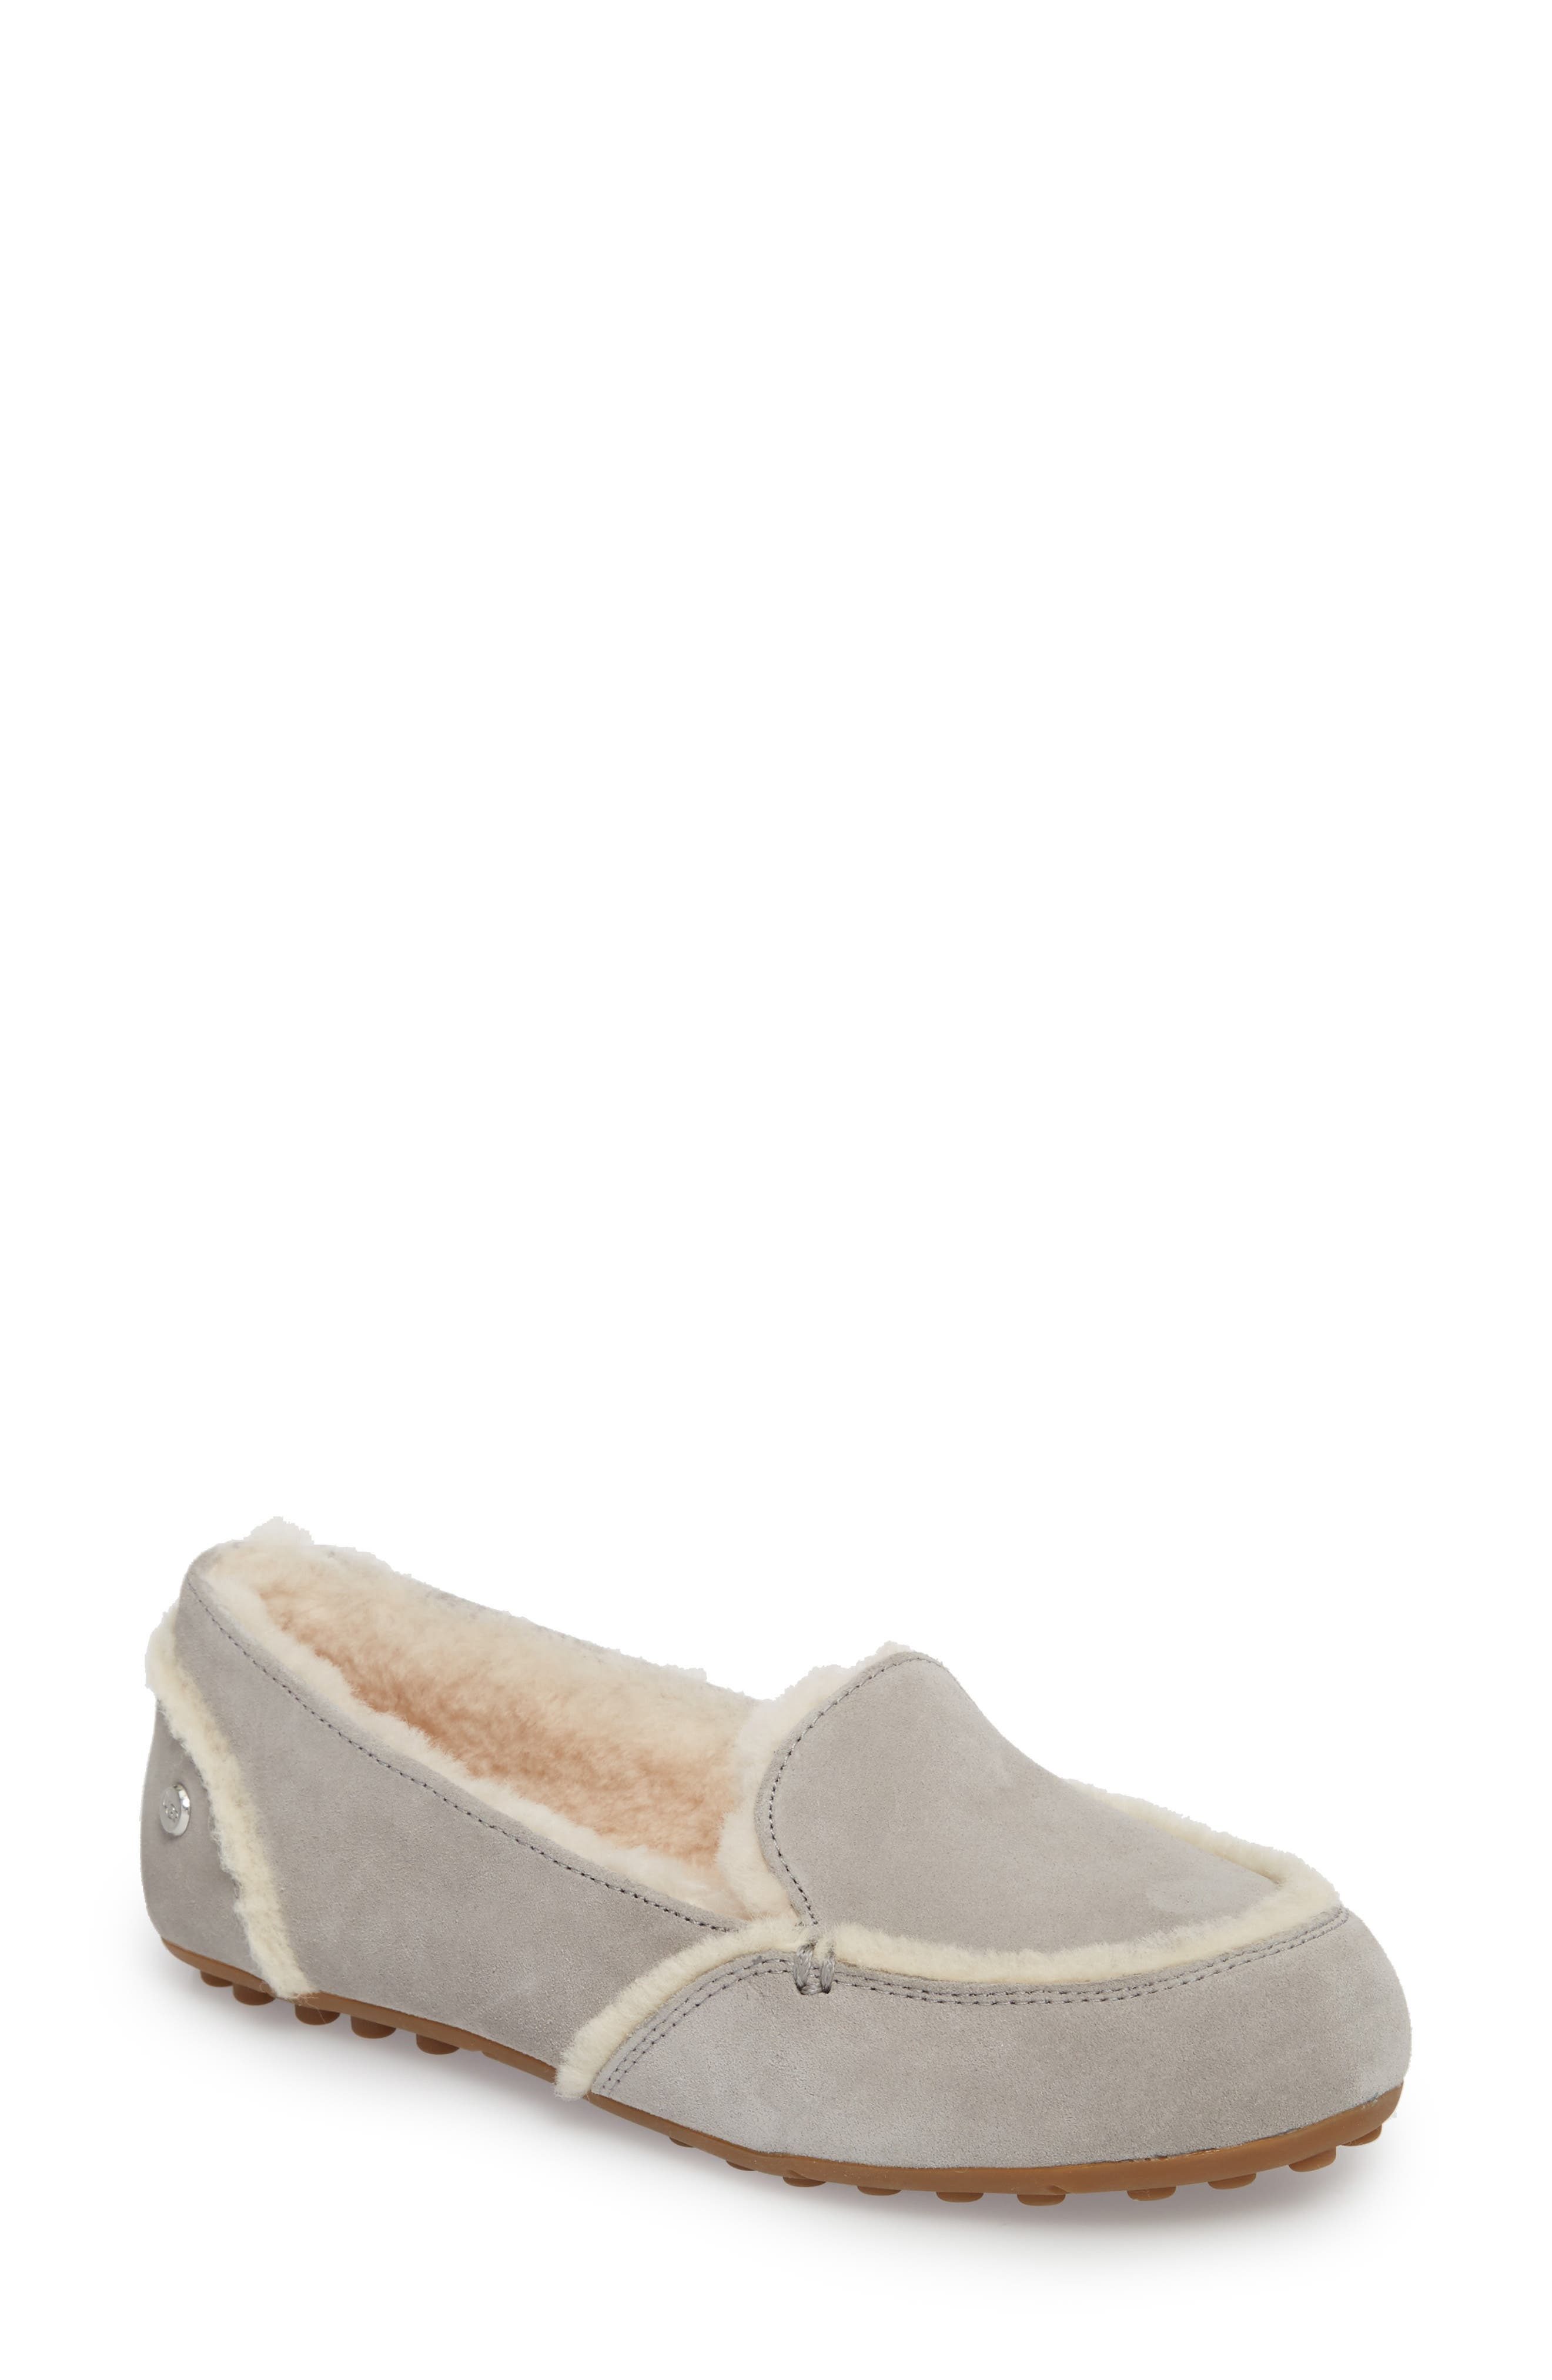 Hailey Slipper,                             Main thumbnail 1, color,                             GREY SUEDE